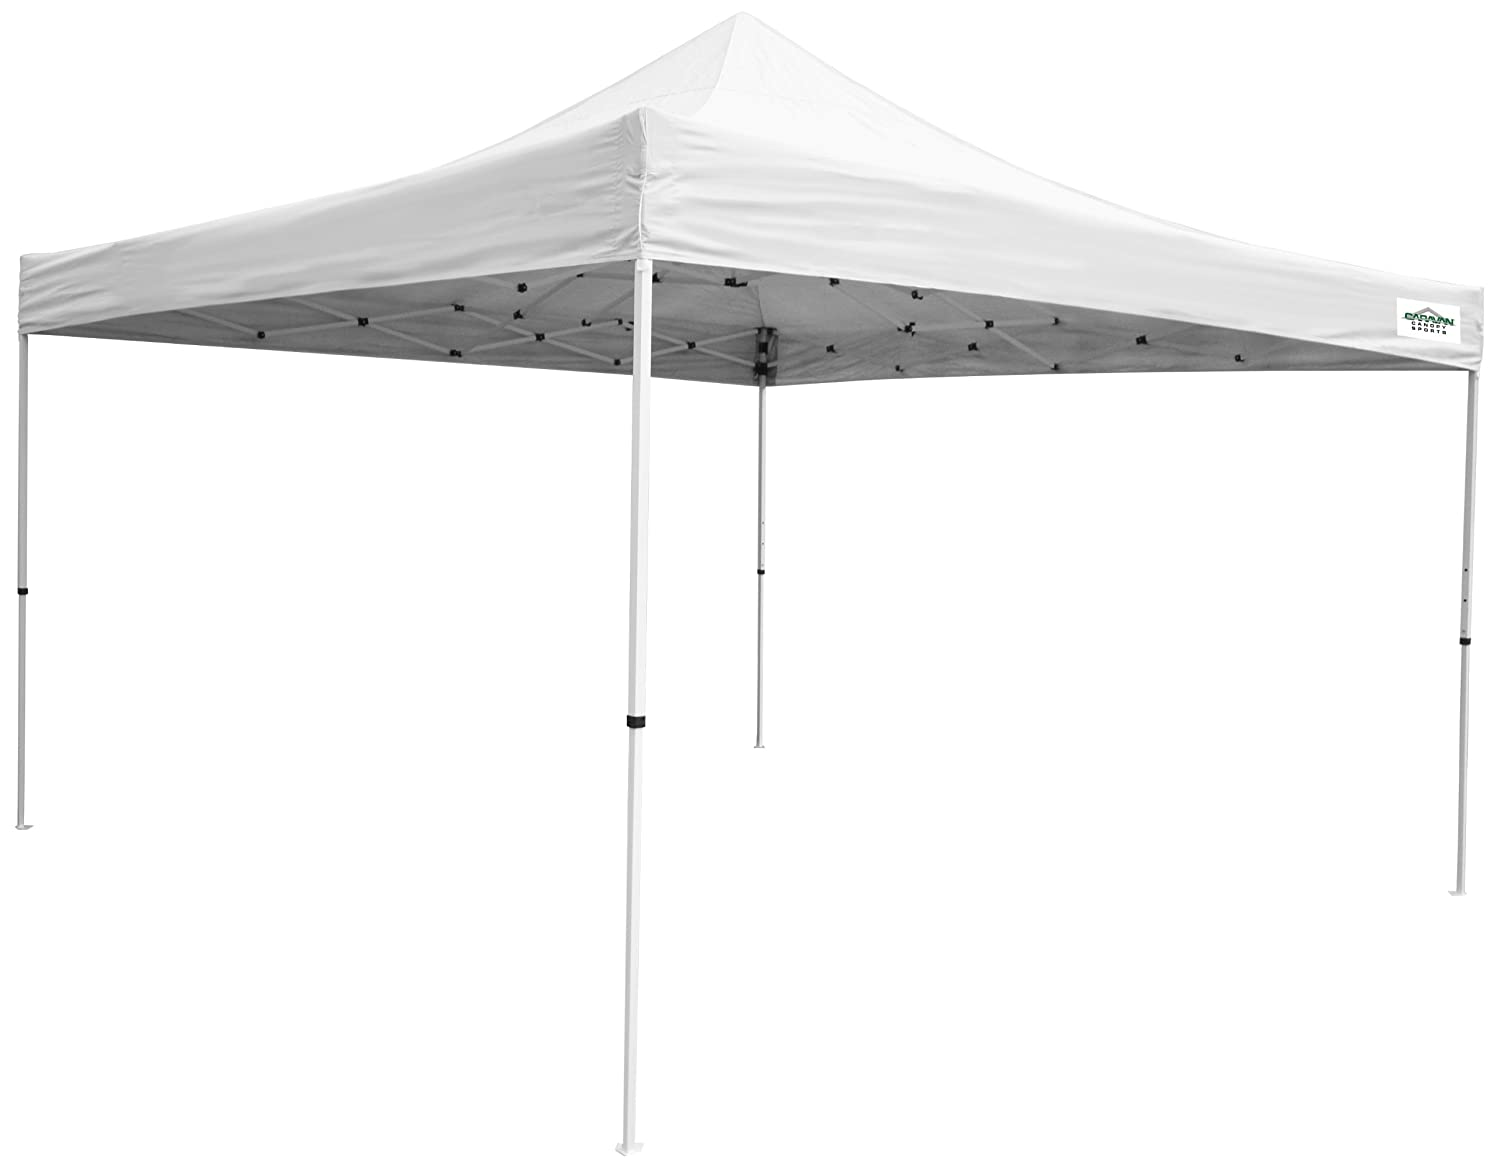 Caravan Canopy M-Series 2 Pro Canopy Kit - 10 X 10-Feet Caravan Global 21008100060